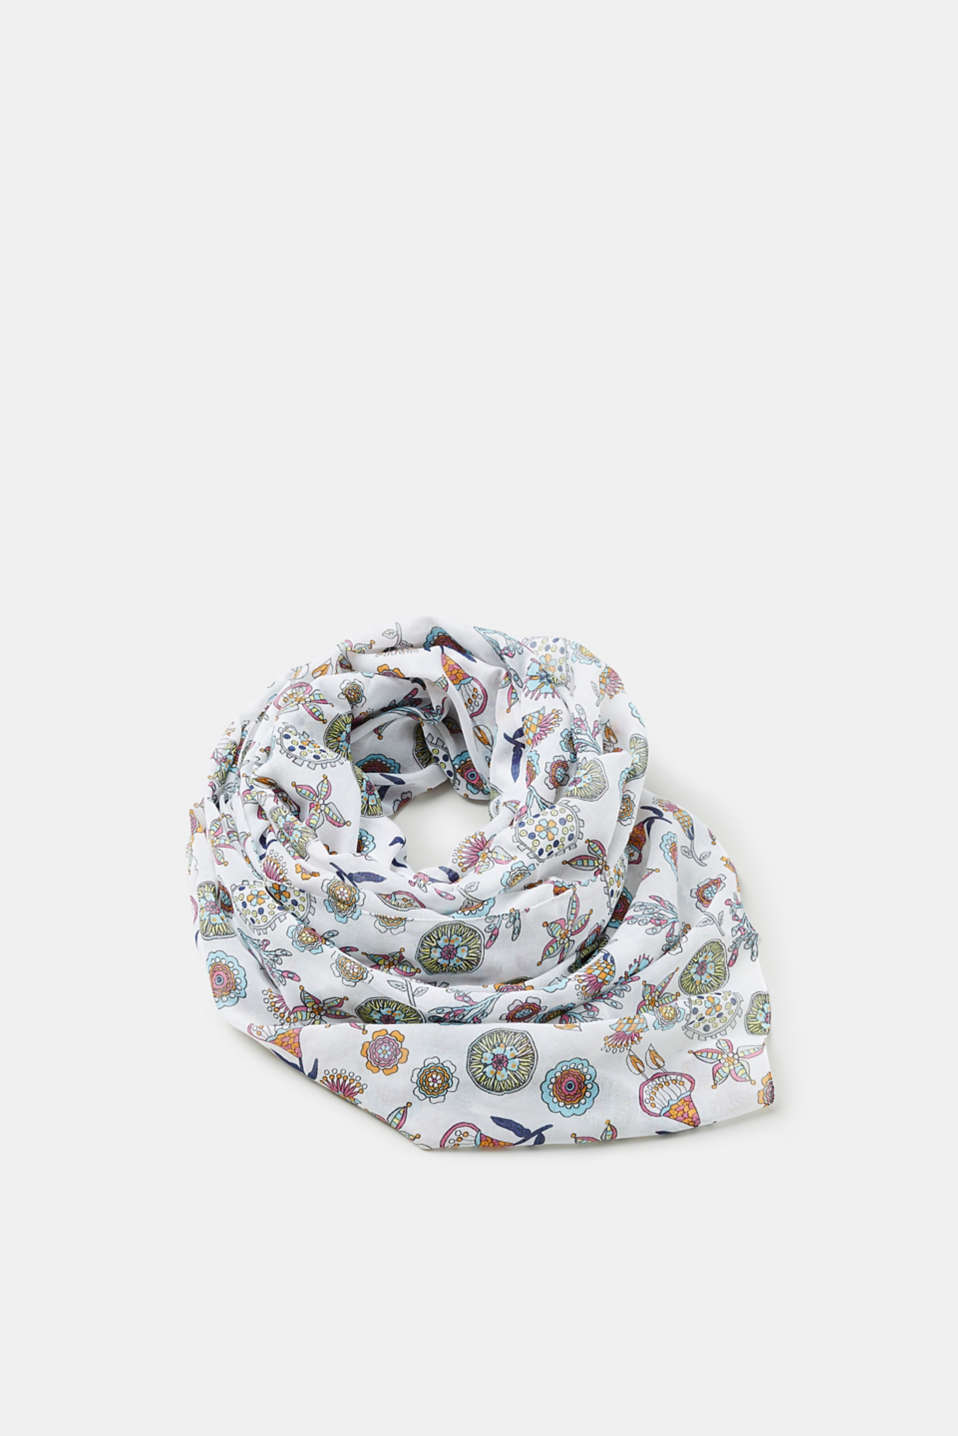 This brightly coloured scarf made of airily light fabric is instantly eye-catching.